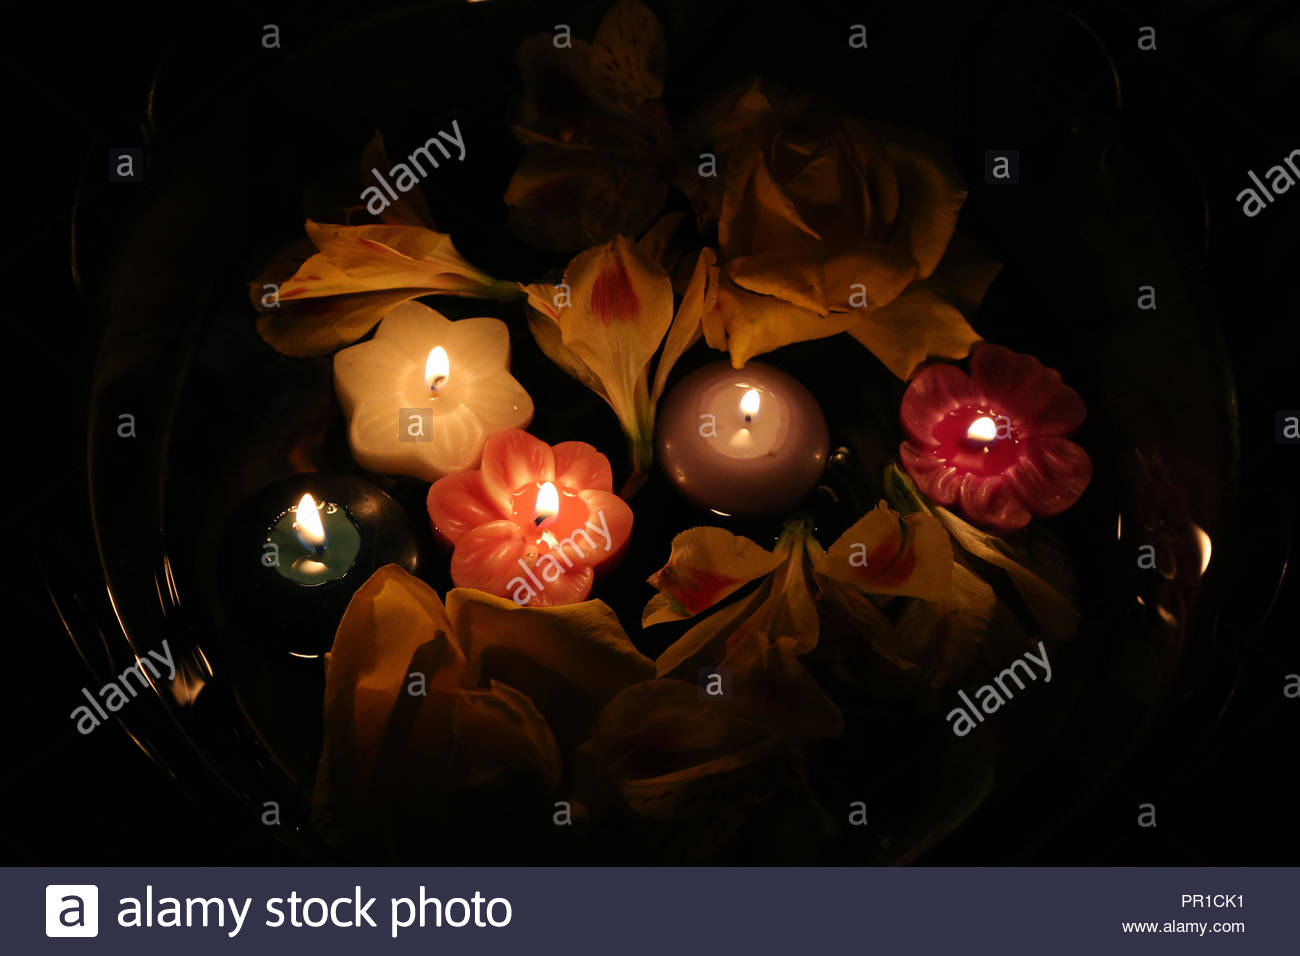 Ambient floating floral candles. - Stock Image